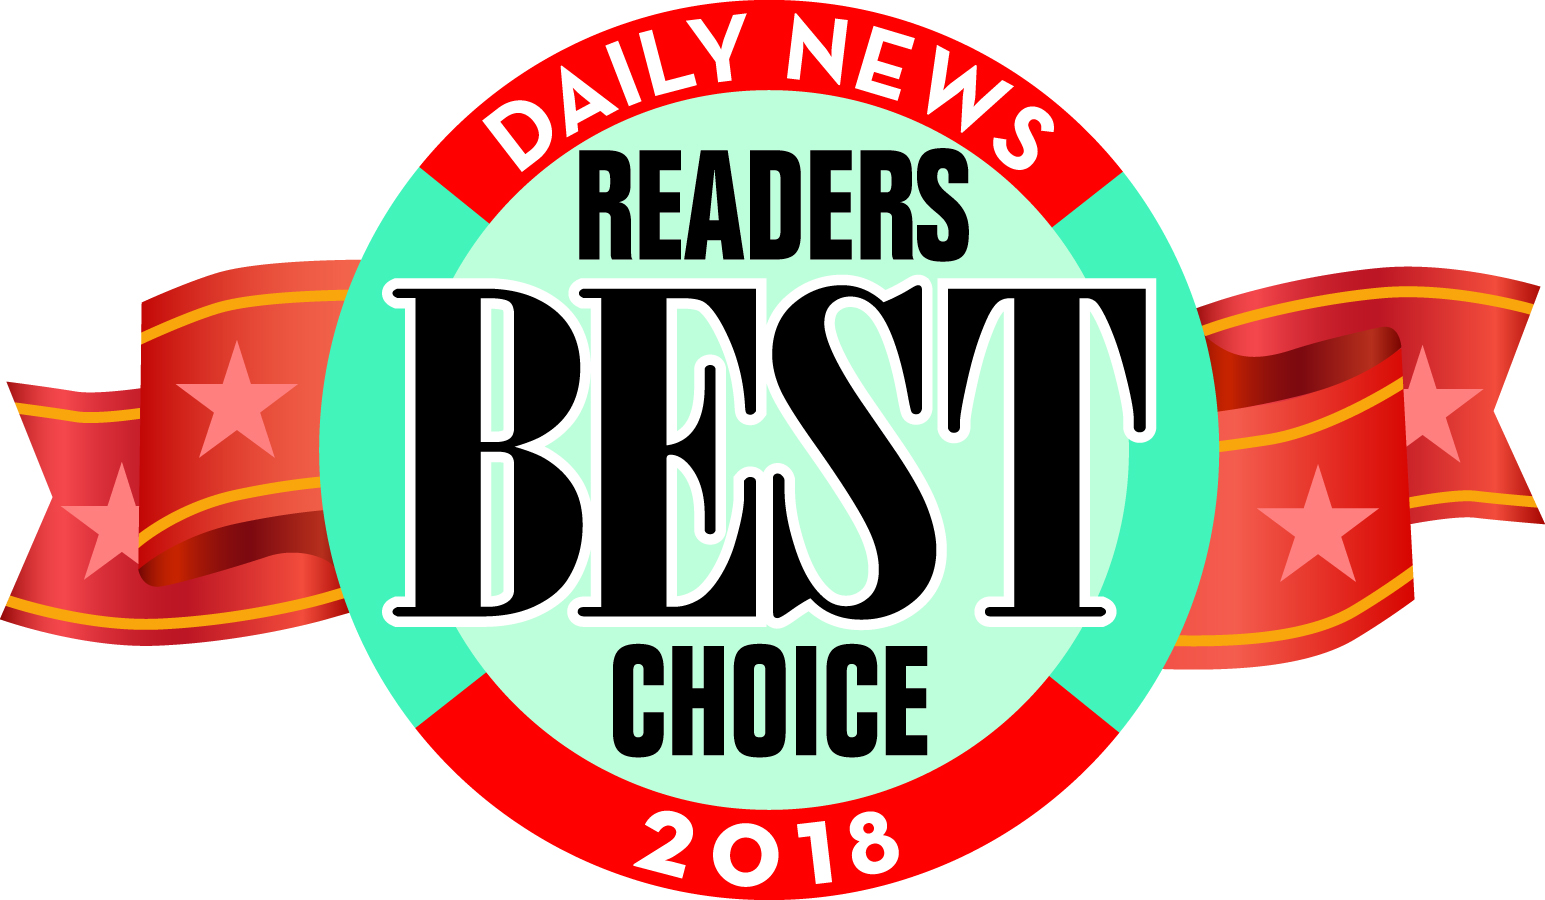 Daily News Readers BEST Choice 2018